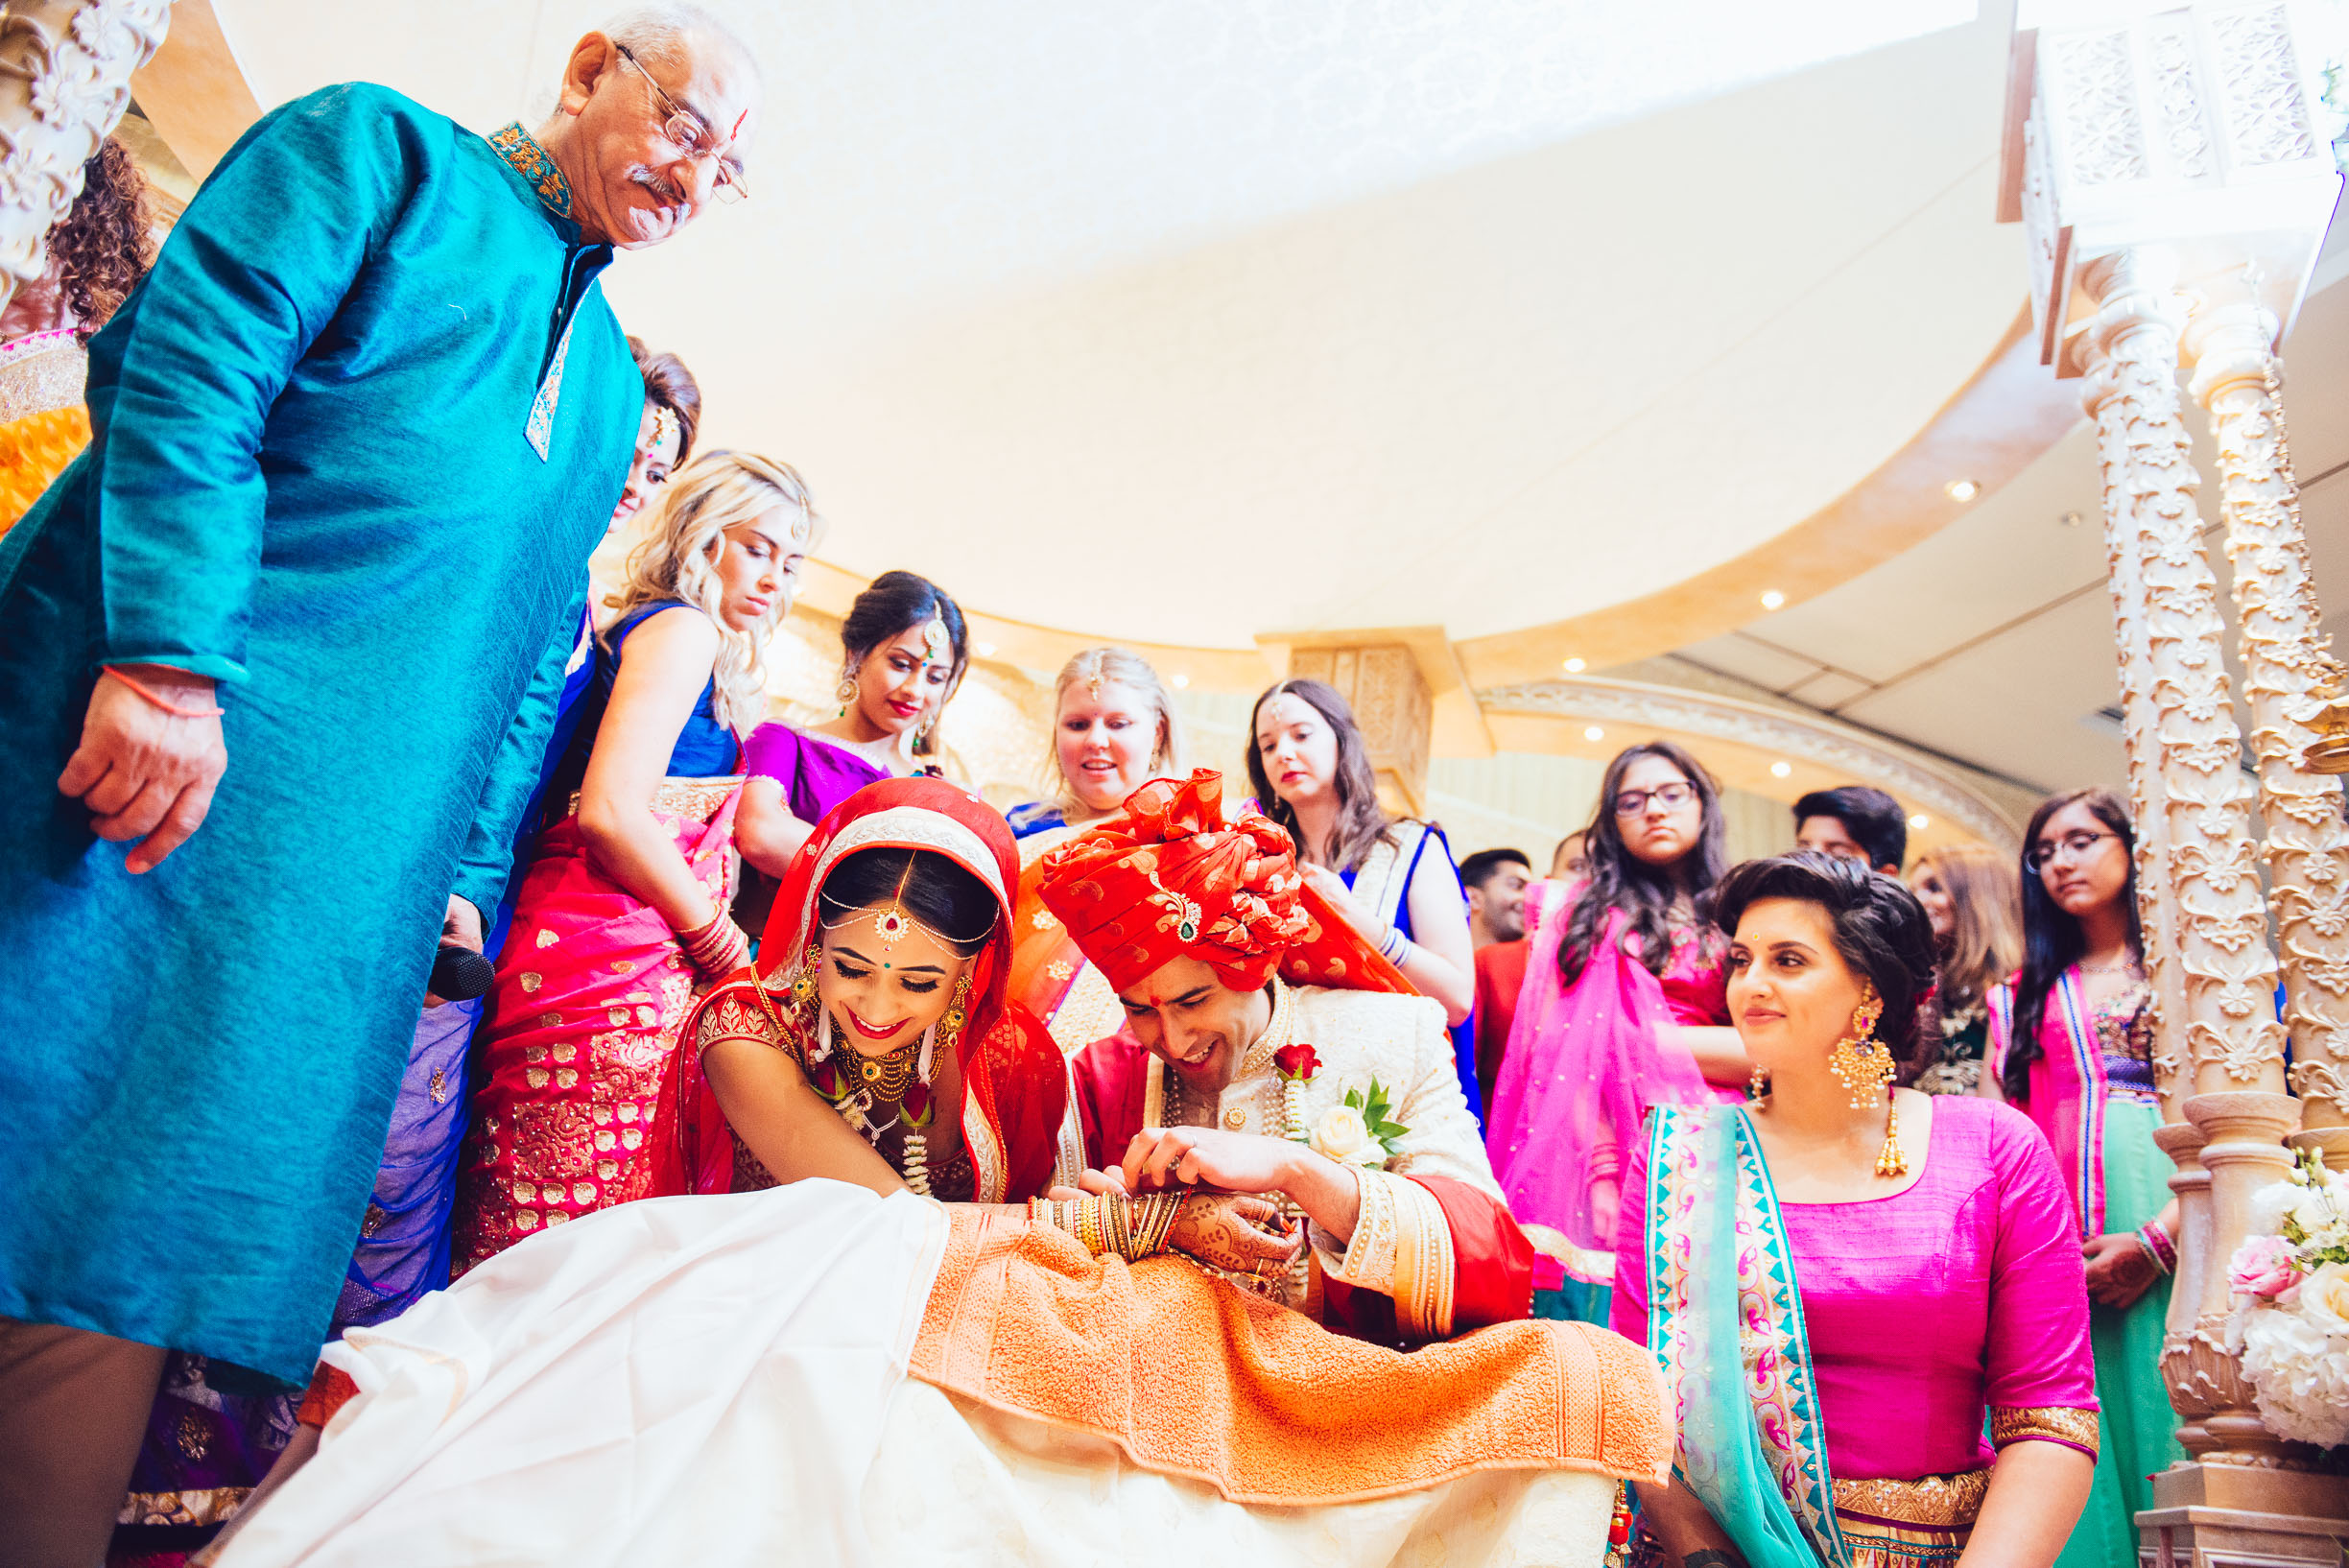 amit&ceema_eden_moments_wedding_photography-18